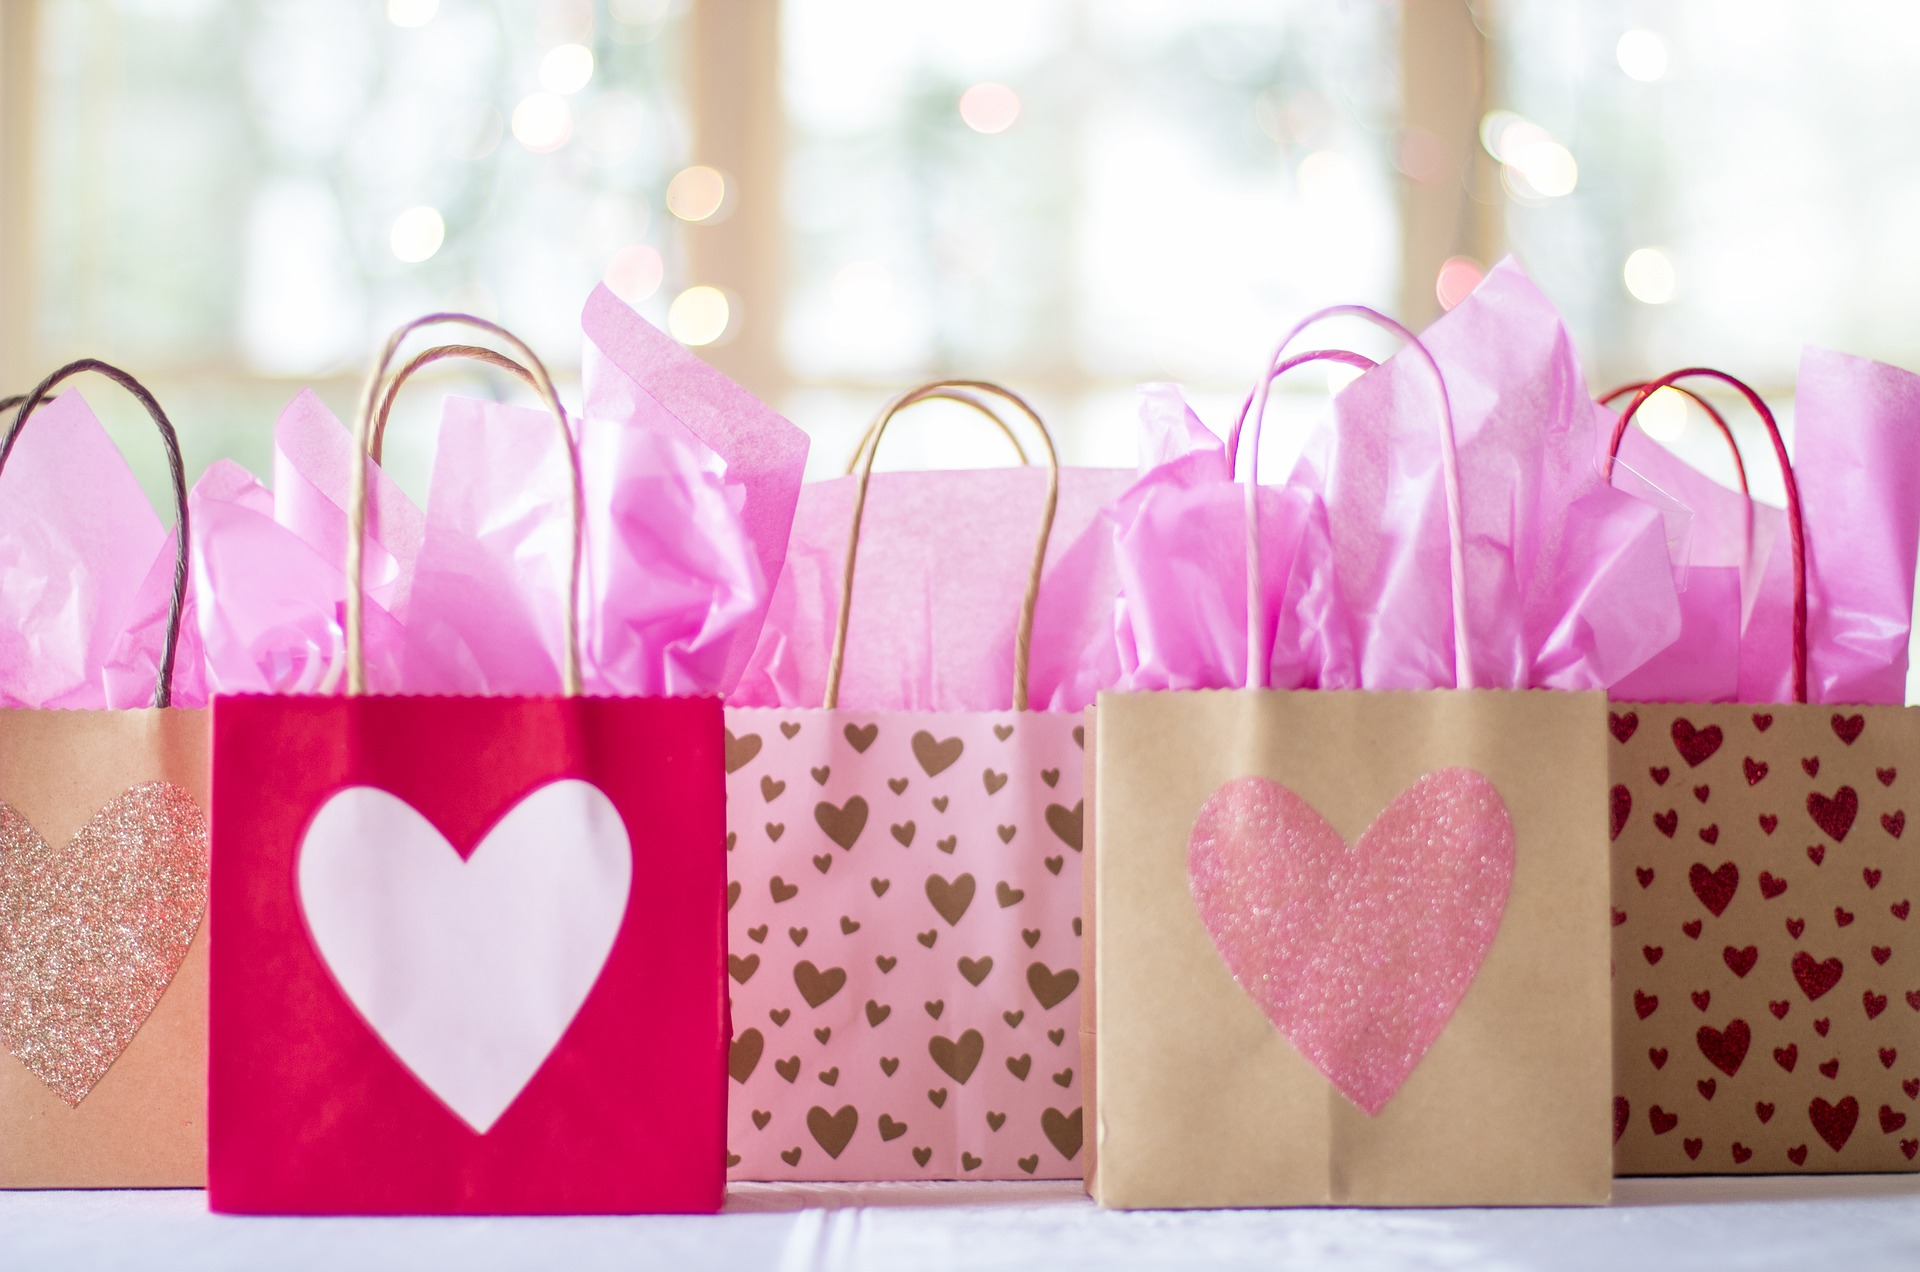 gift-bags-2067663_1920